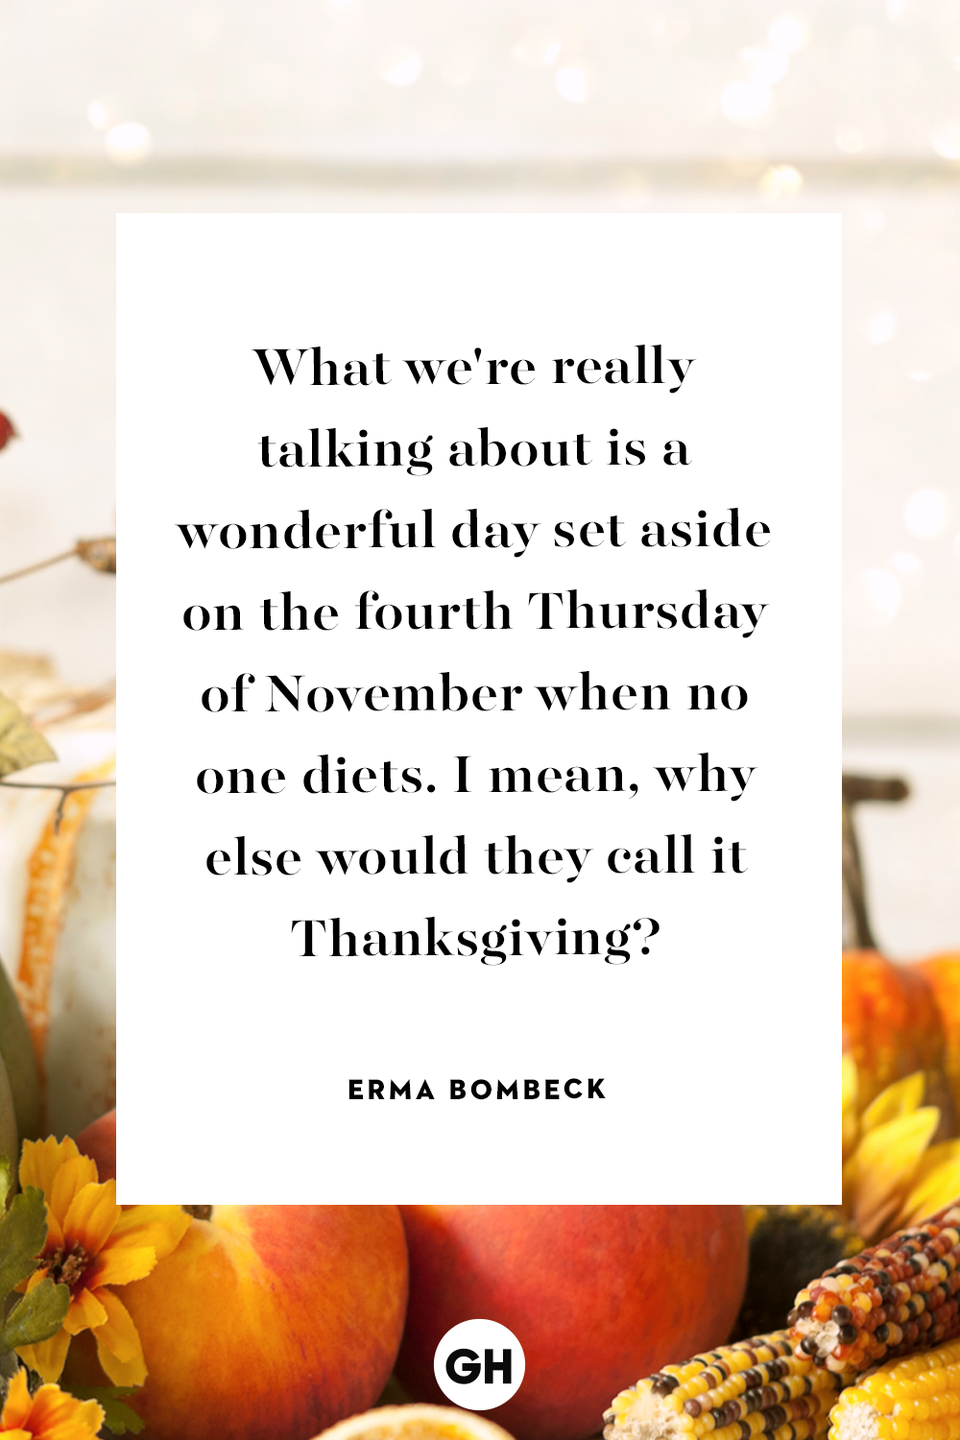 <p>What we're really talking about is a wonderful day set aside on the fourth Thursday of November when no one diets. I mean, why else would they call it Thanksgiving?</p>